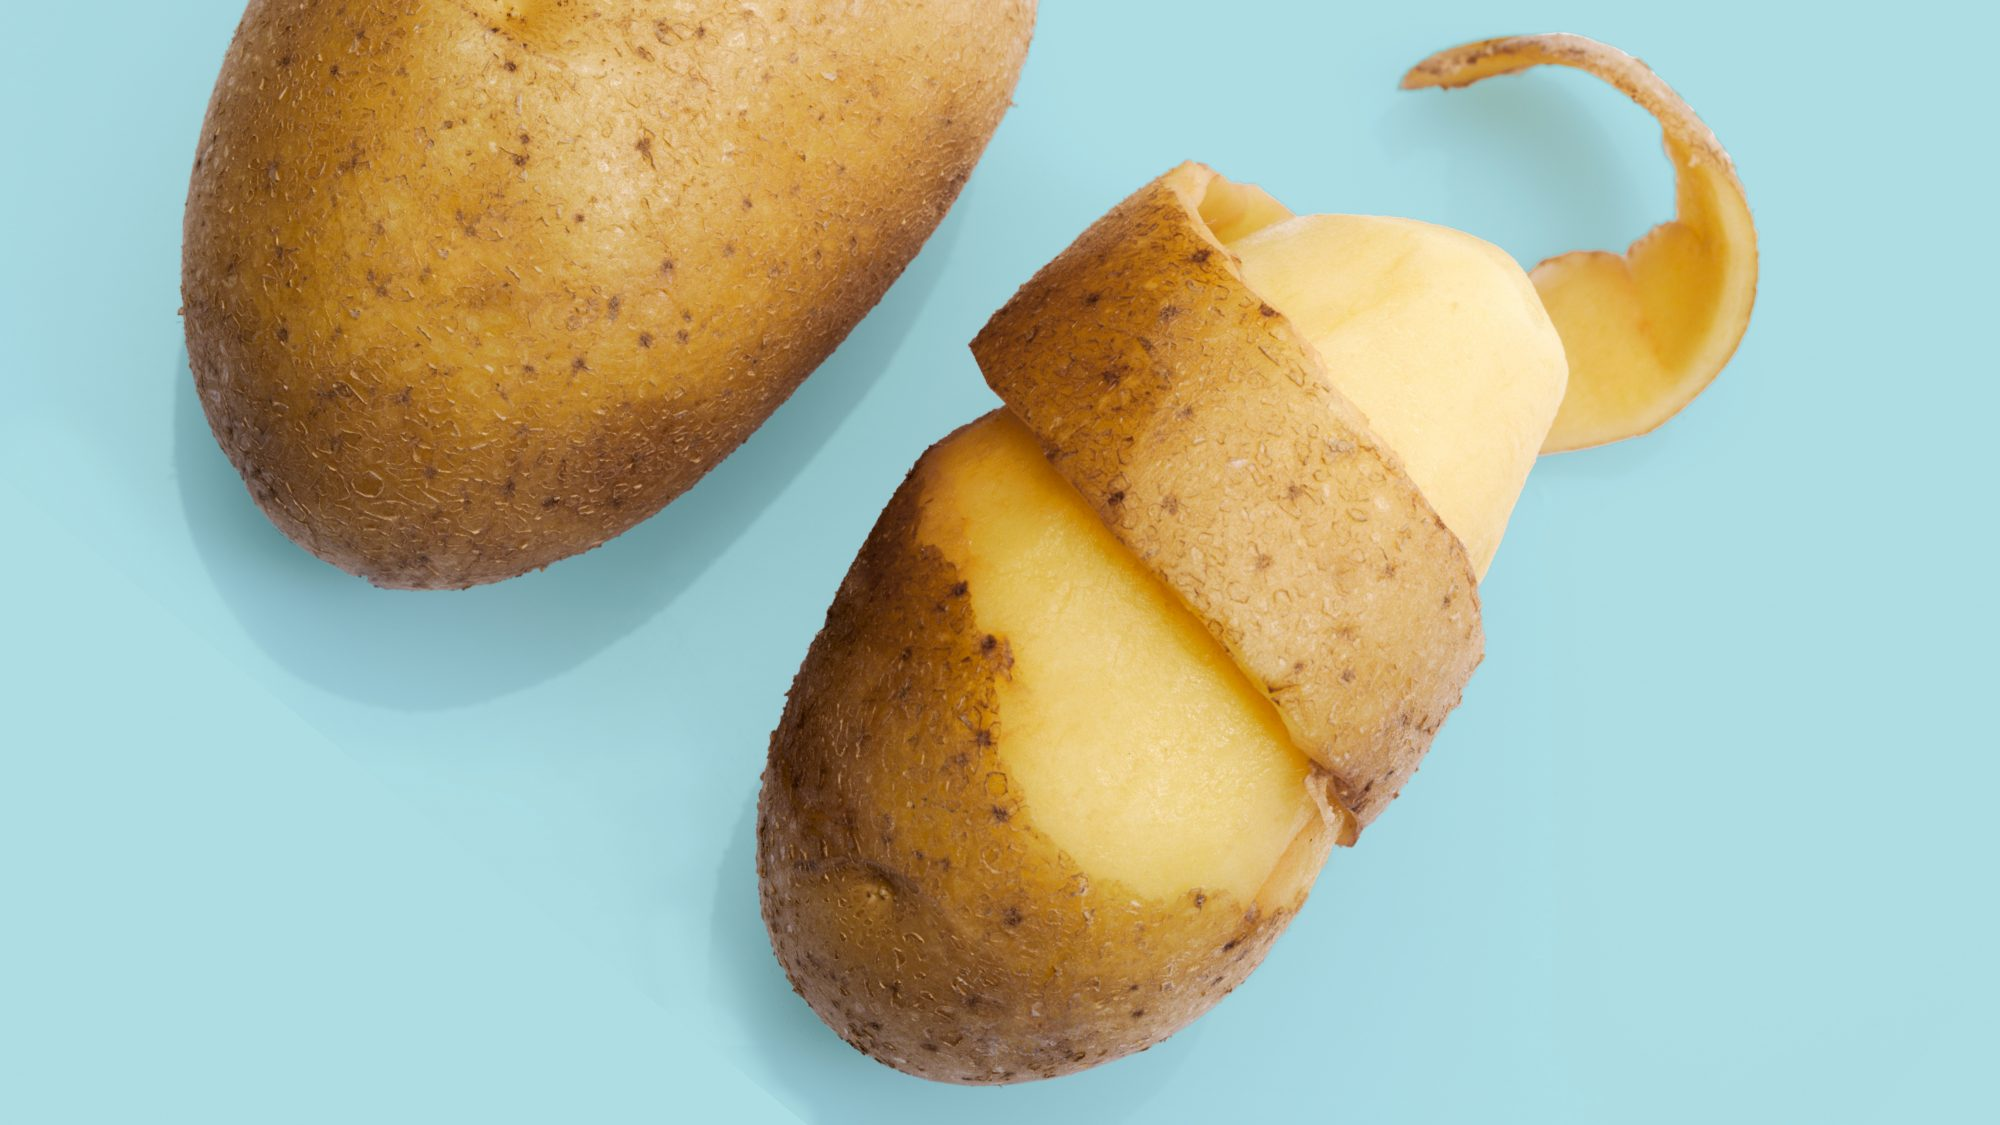 potato nutrition: half-peeled potato